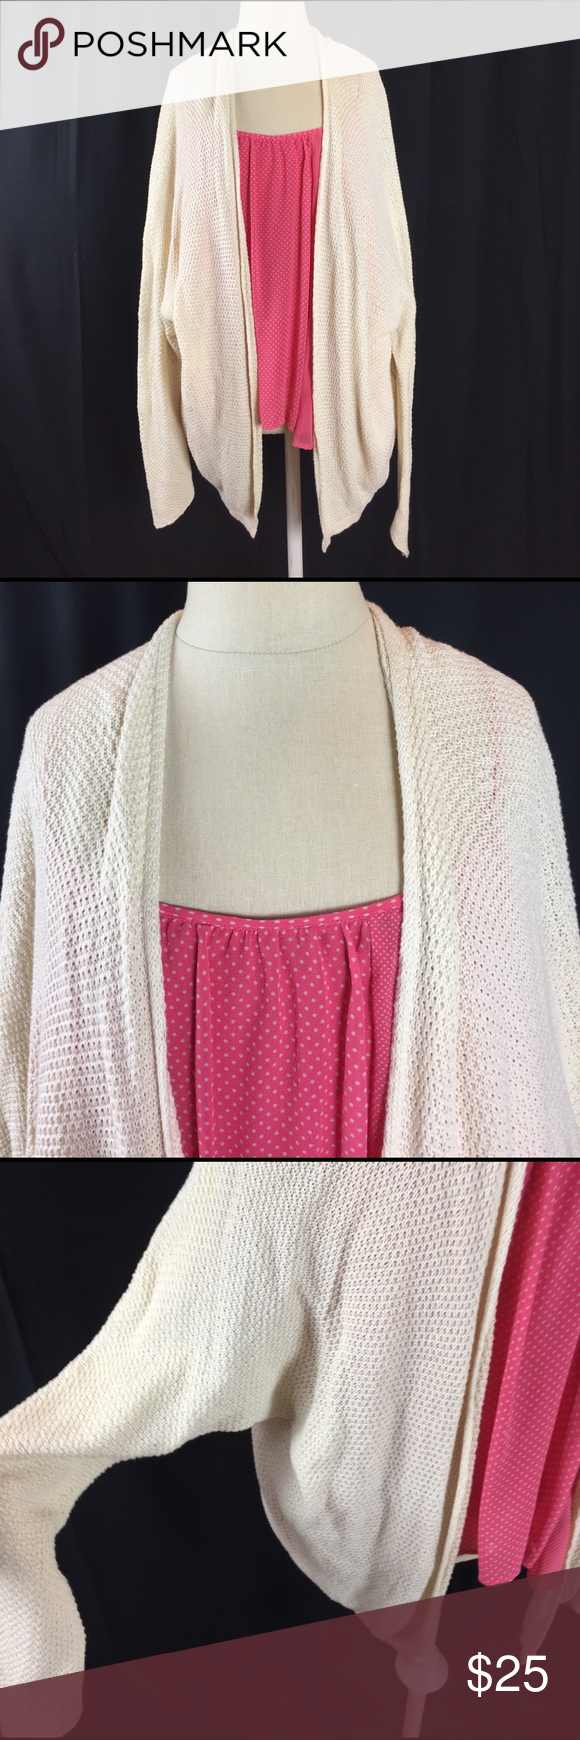 Brandy Melville Cardigan 100% Cotton. Made in Italy. Brandy Melville Sweaters Cardigans